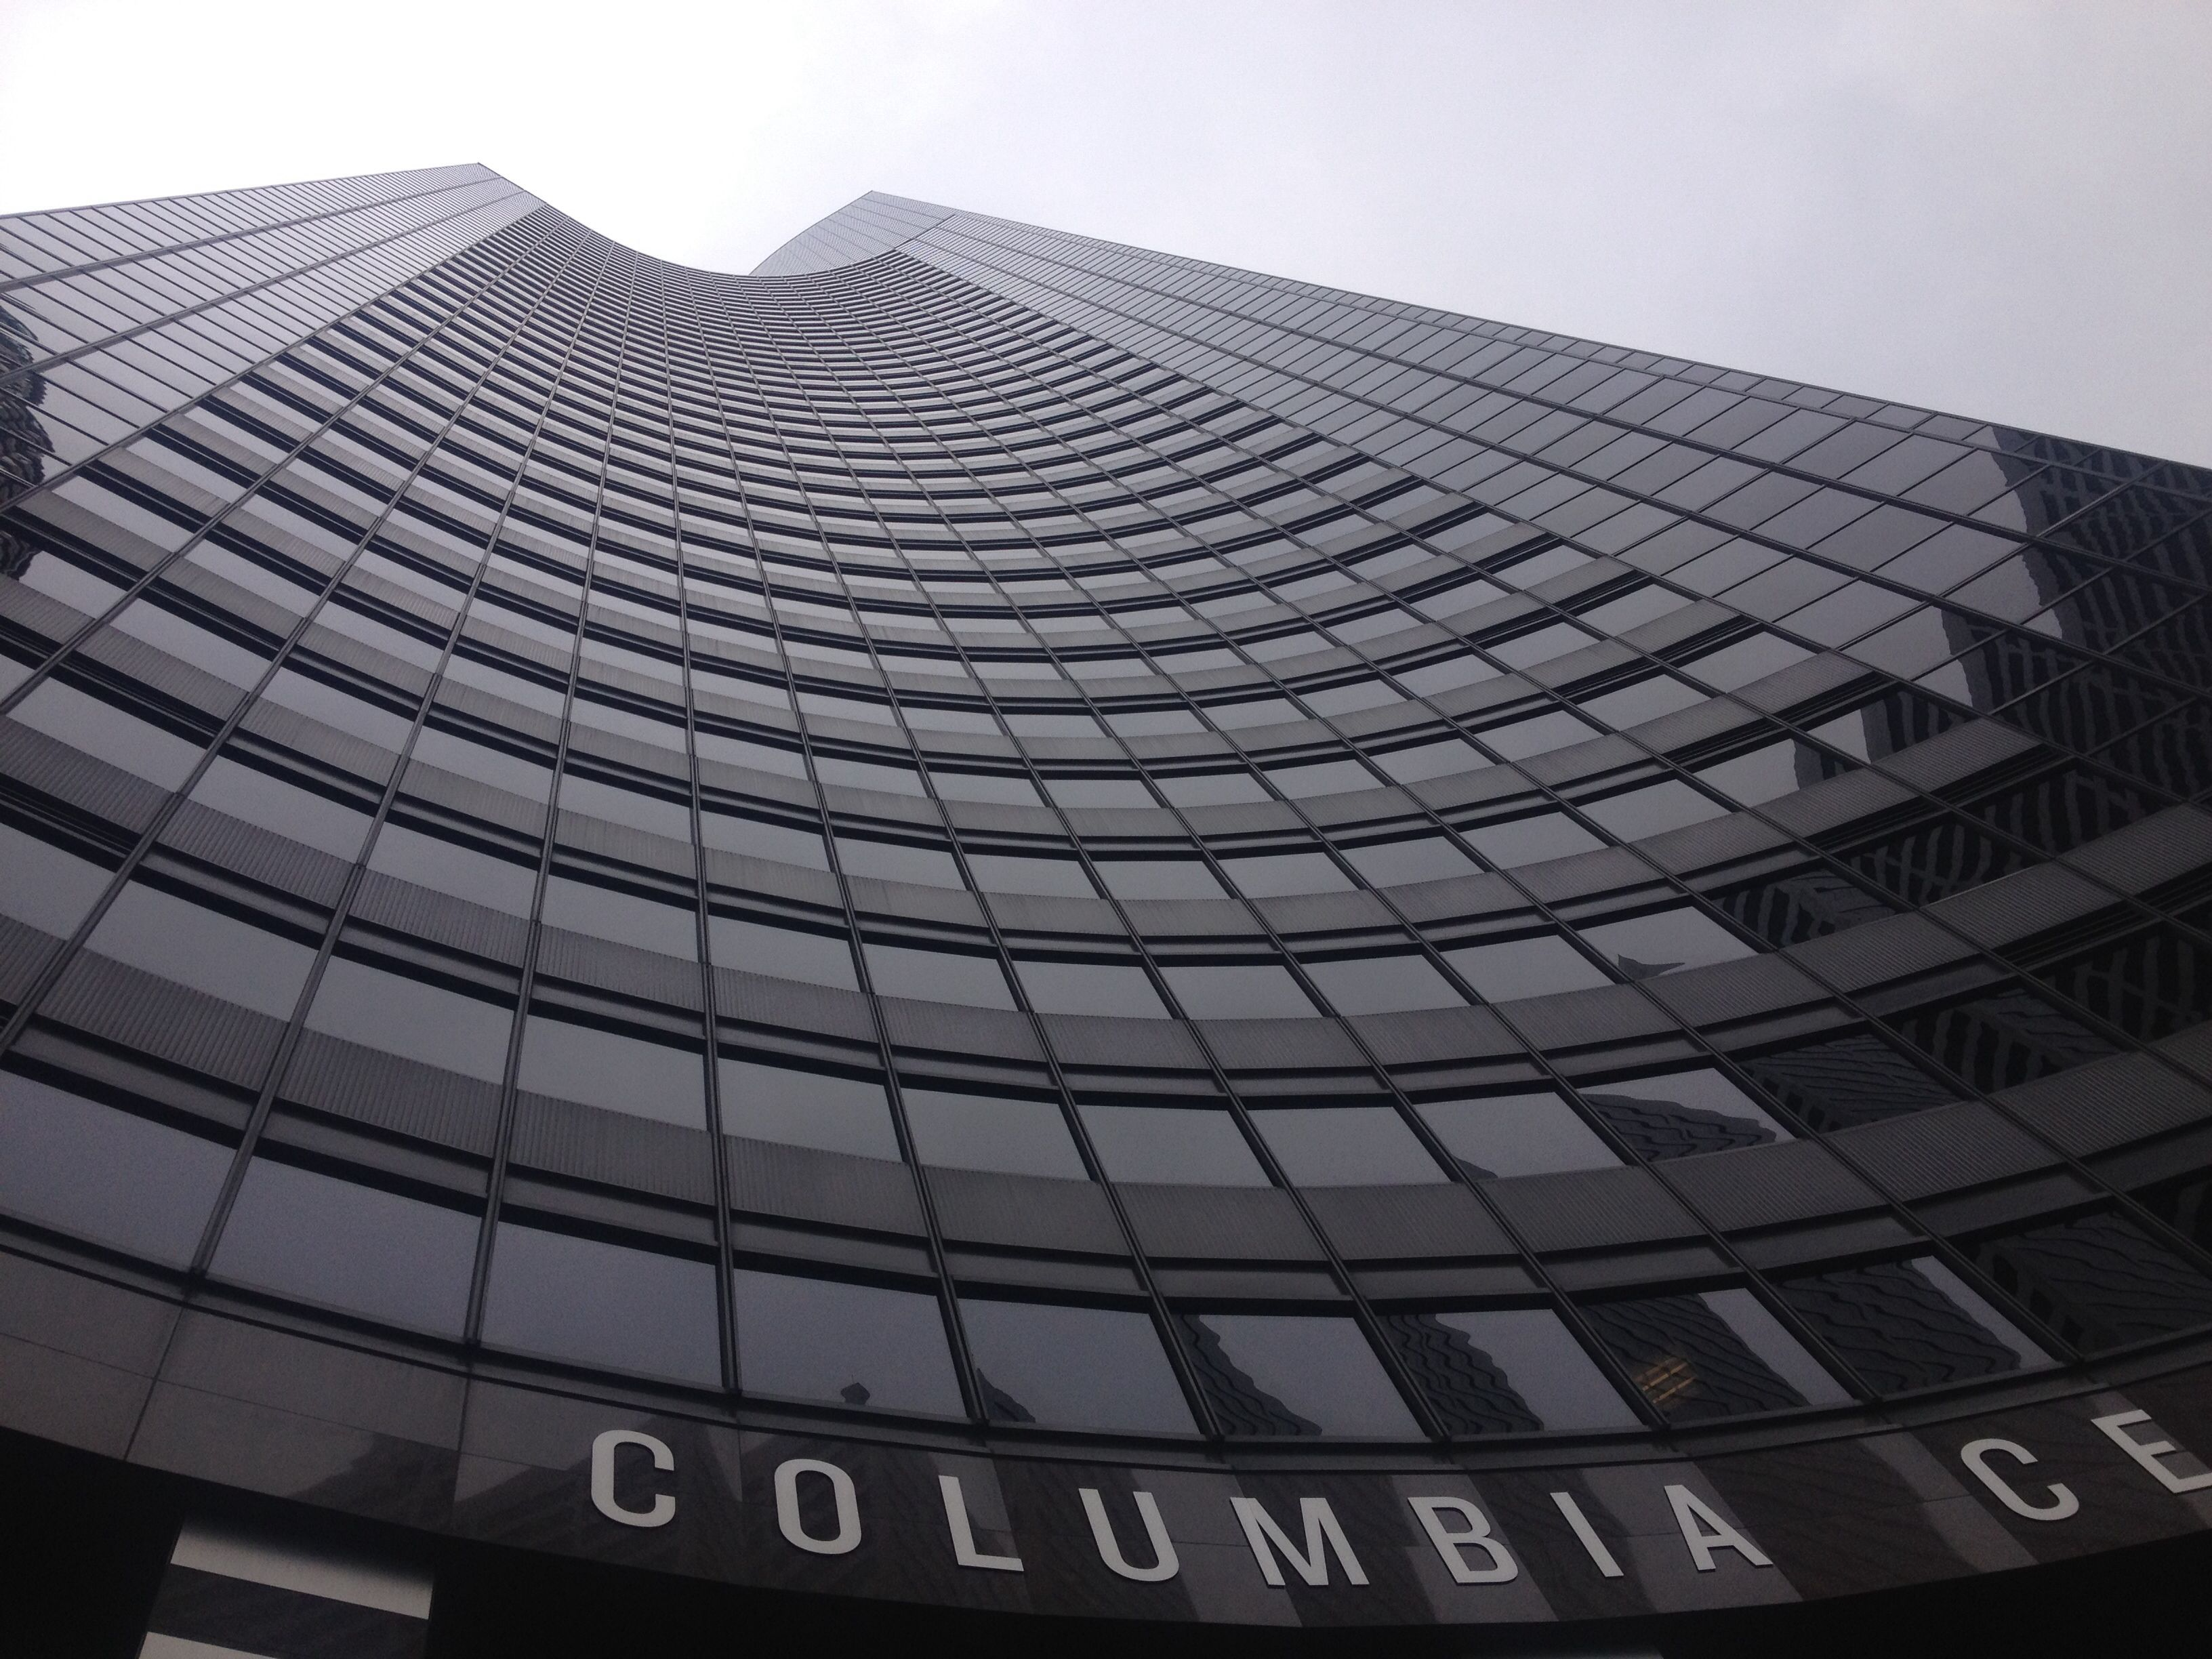 Columbia Building. The tallest building is Seattle.